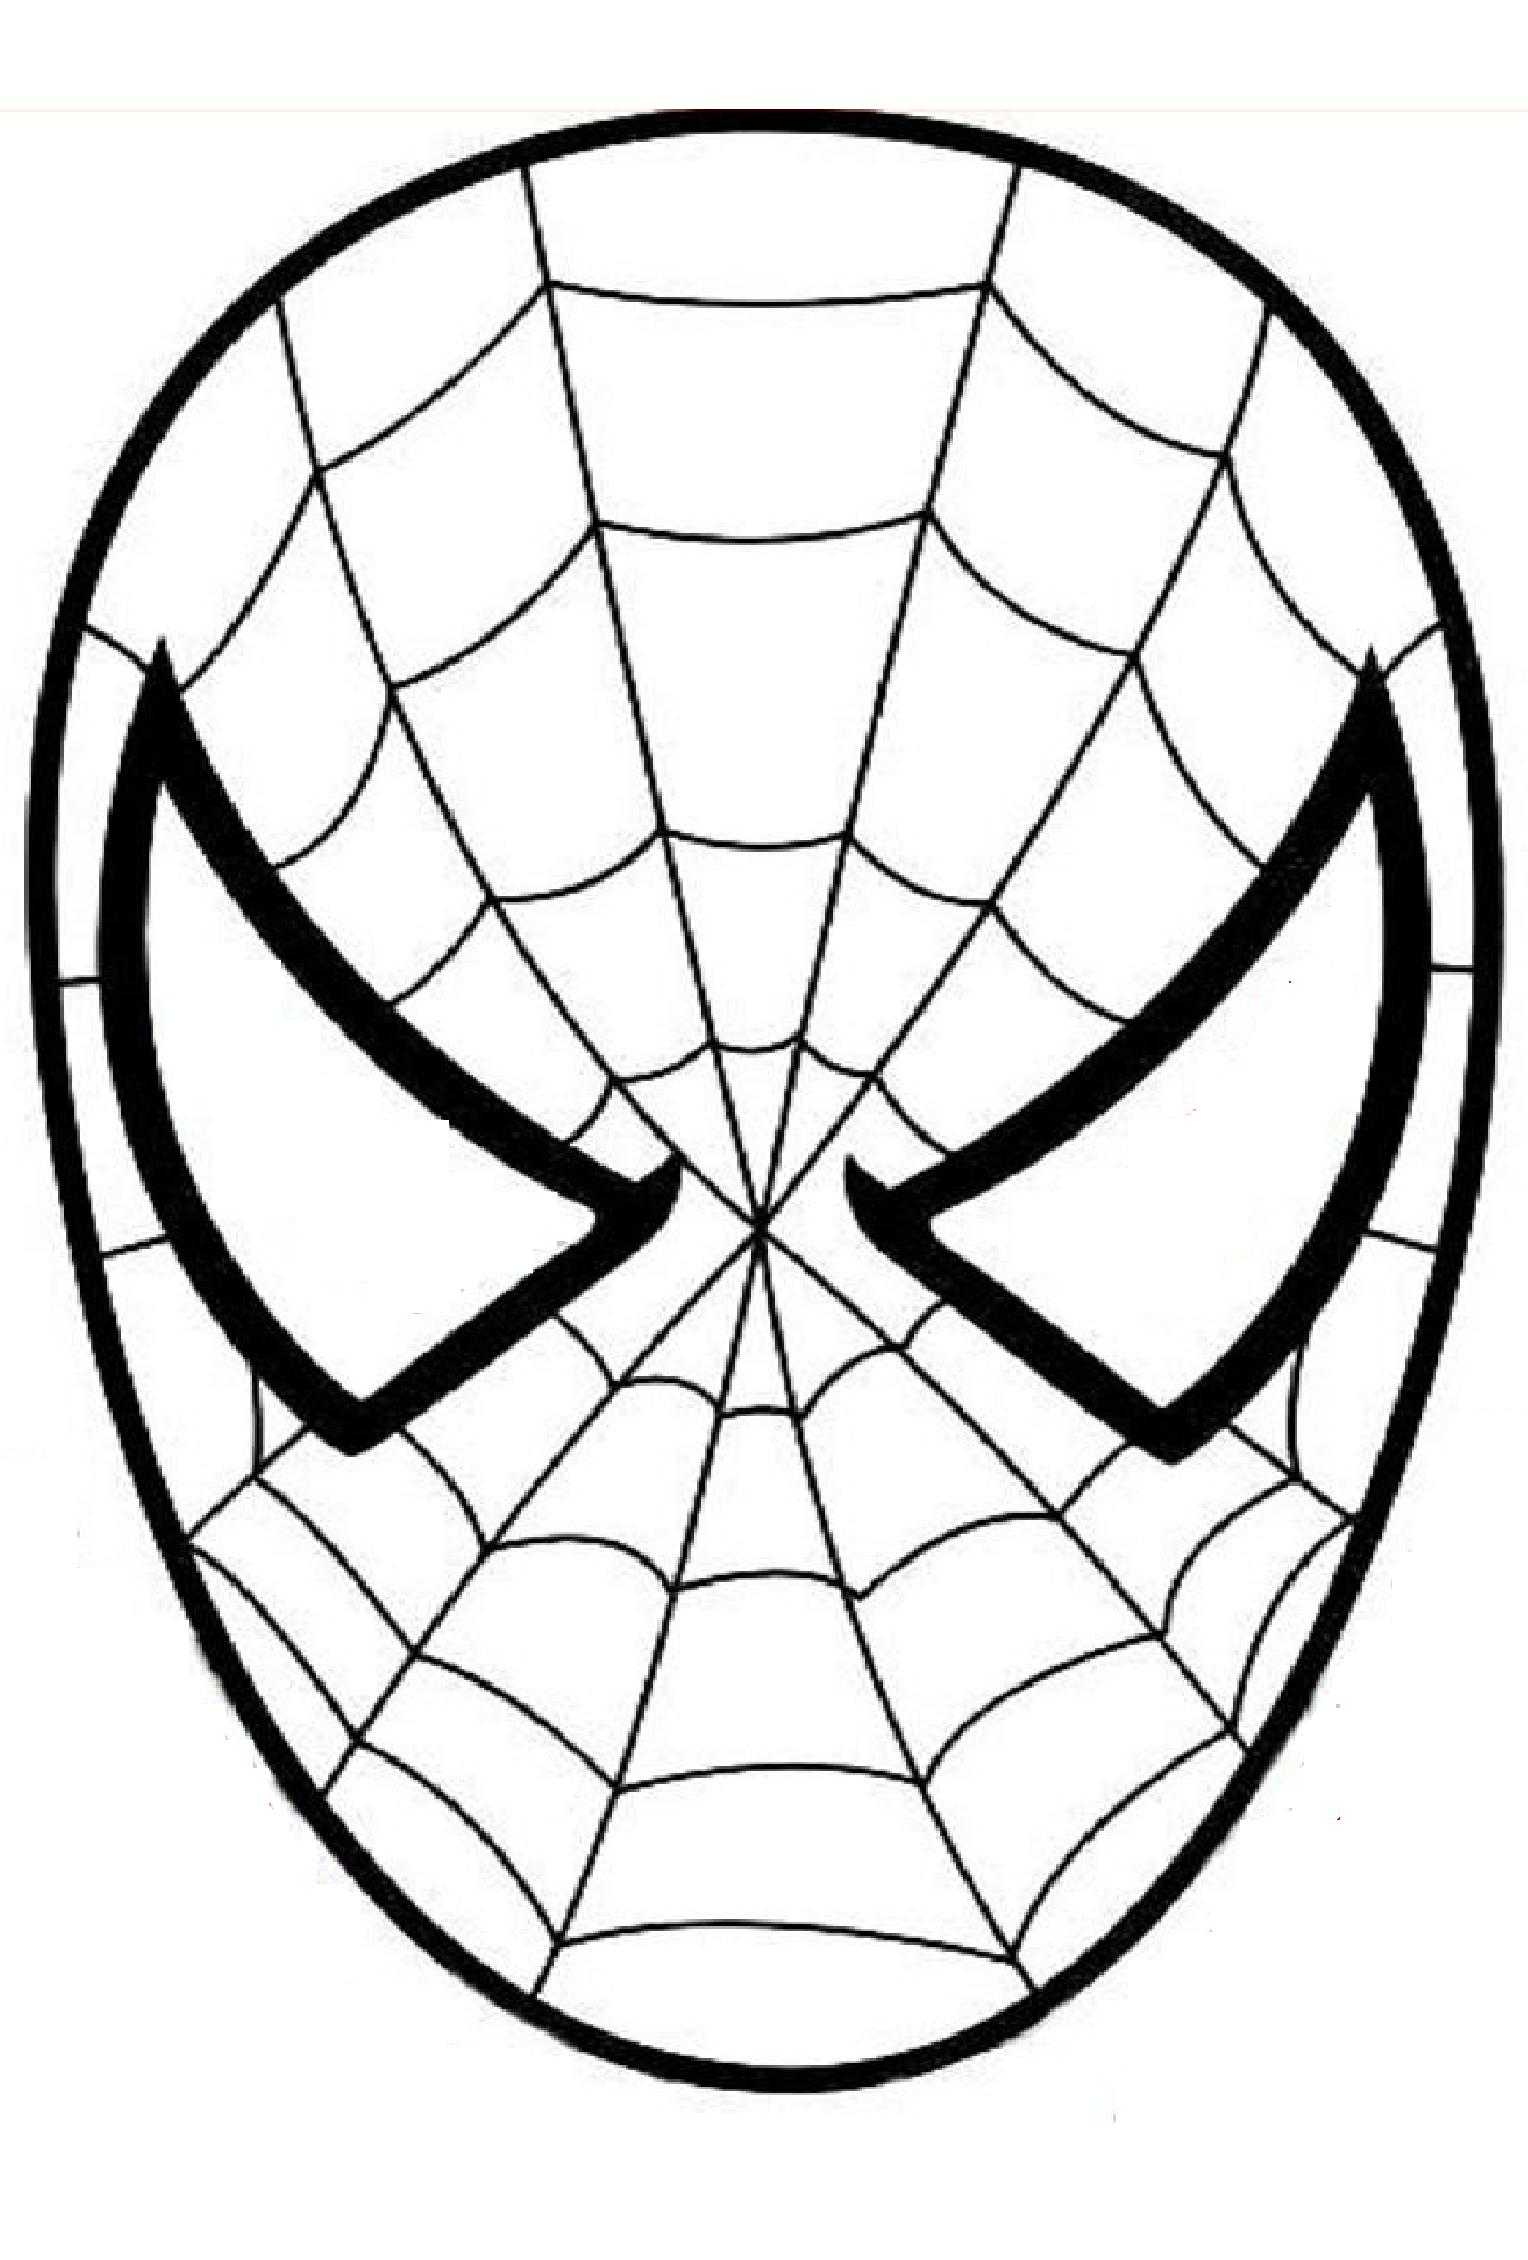 spiderman coloring pages kids spiderman to color for children spiderman kids coloring coloring spiderman pages kids